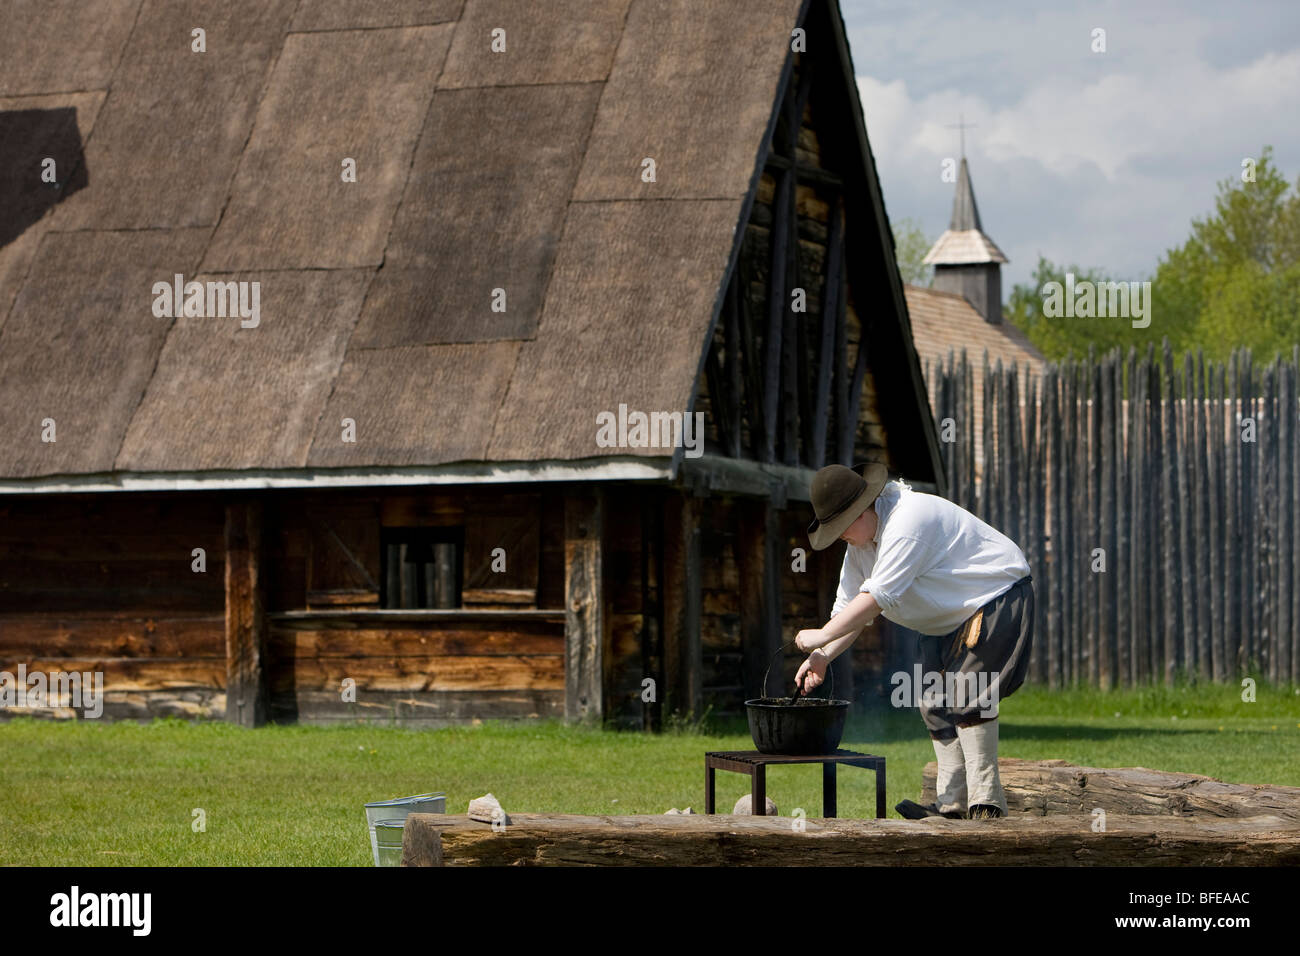 Costumed character tending a pot over a fire in Sainte-Marie Among Hurons settlement in town of Midland Ontario - Stock Image